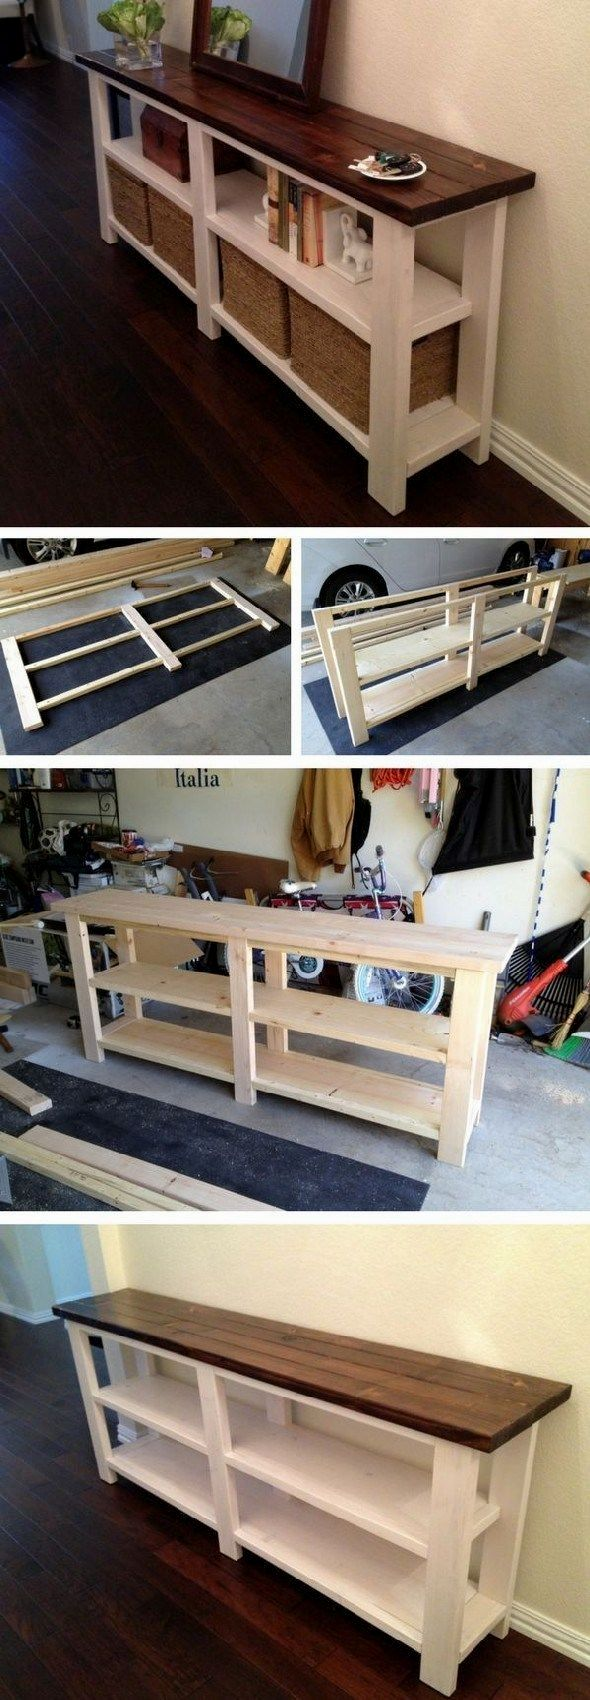 Basics to Carry on DIY wood projects Basics to Carry on DIY wood projects